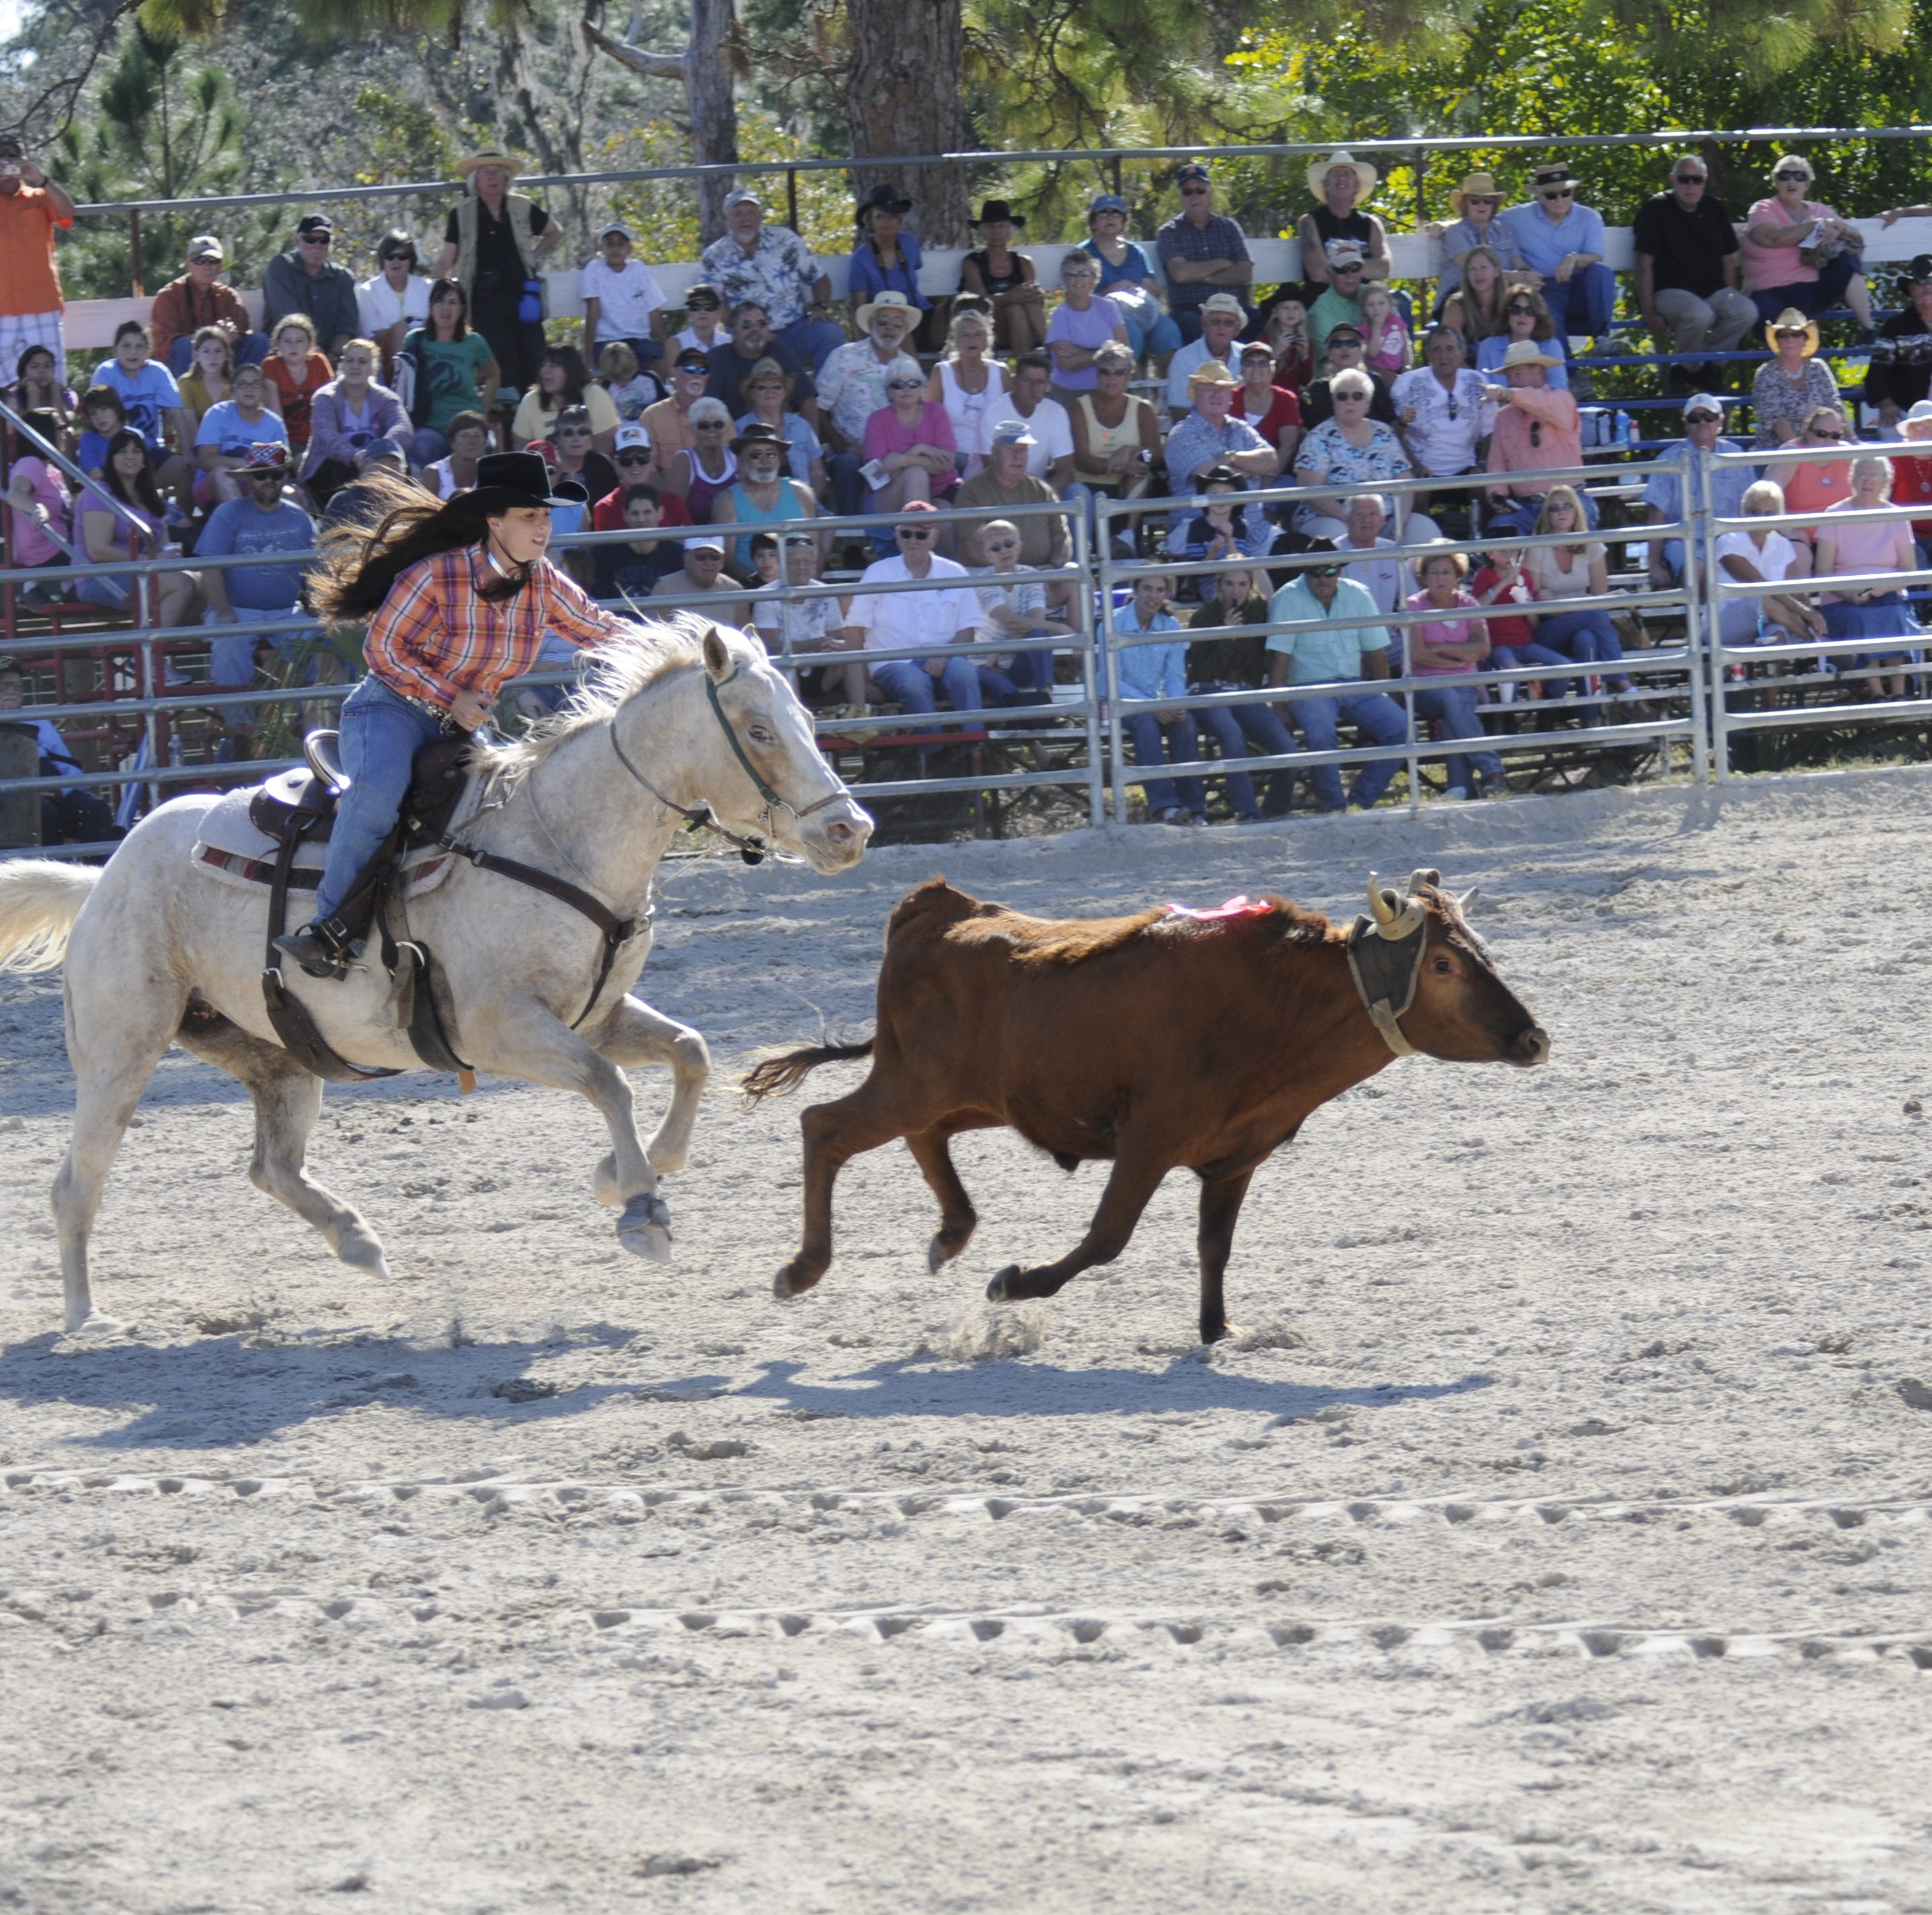 Saddle up for the annual Cracker Day rodeo, back after Hurricane Irma threw it for a year